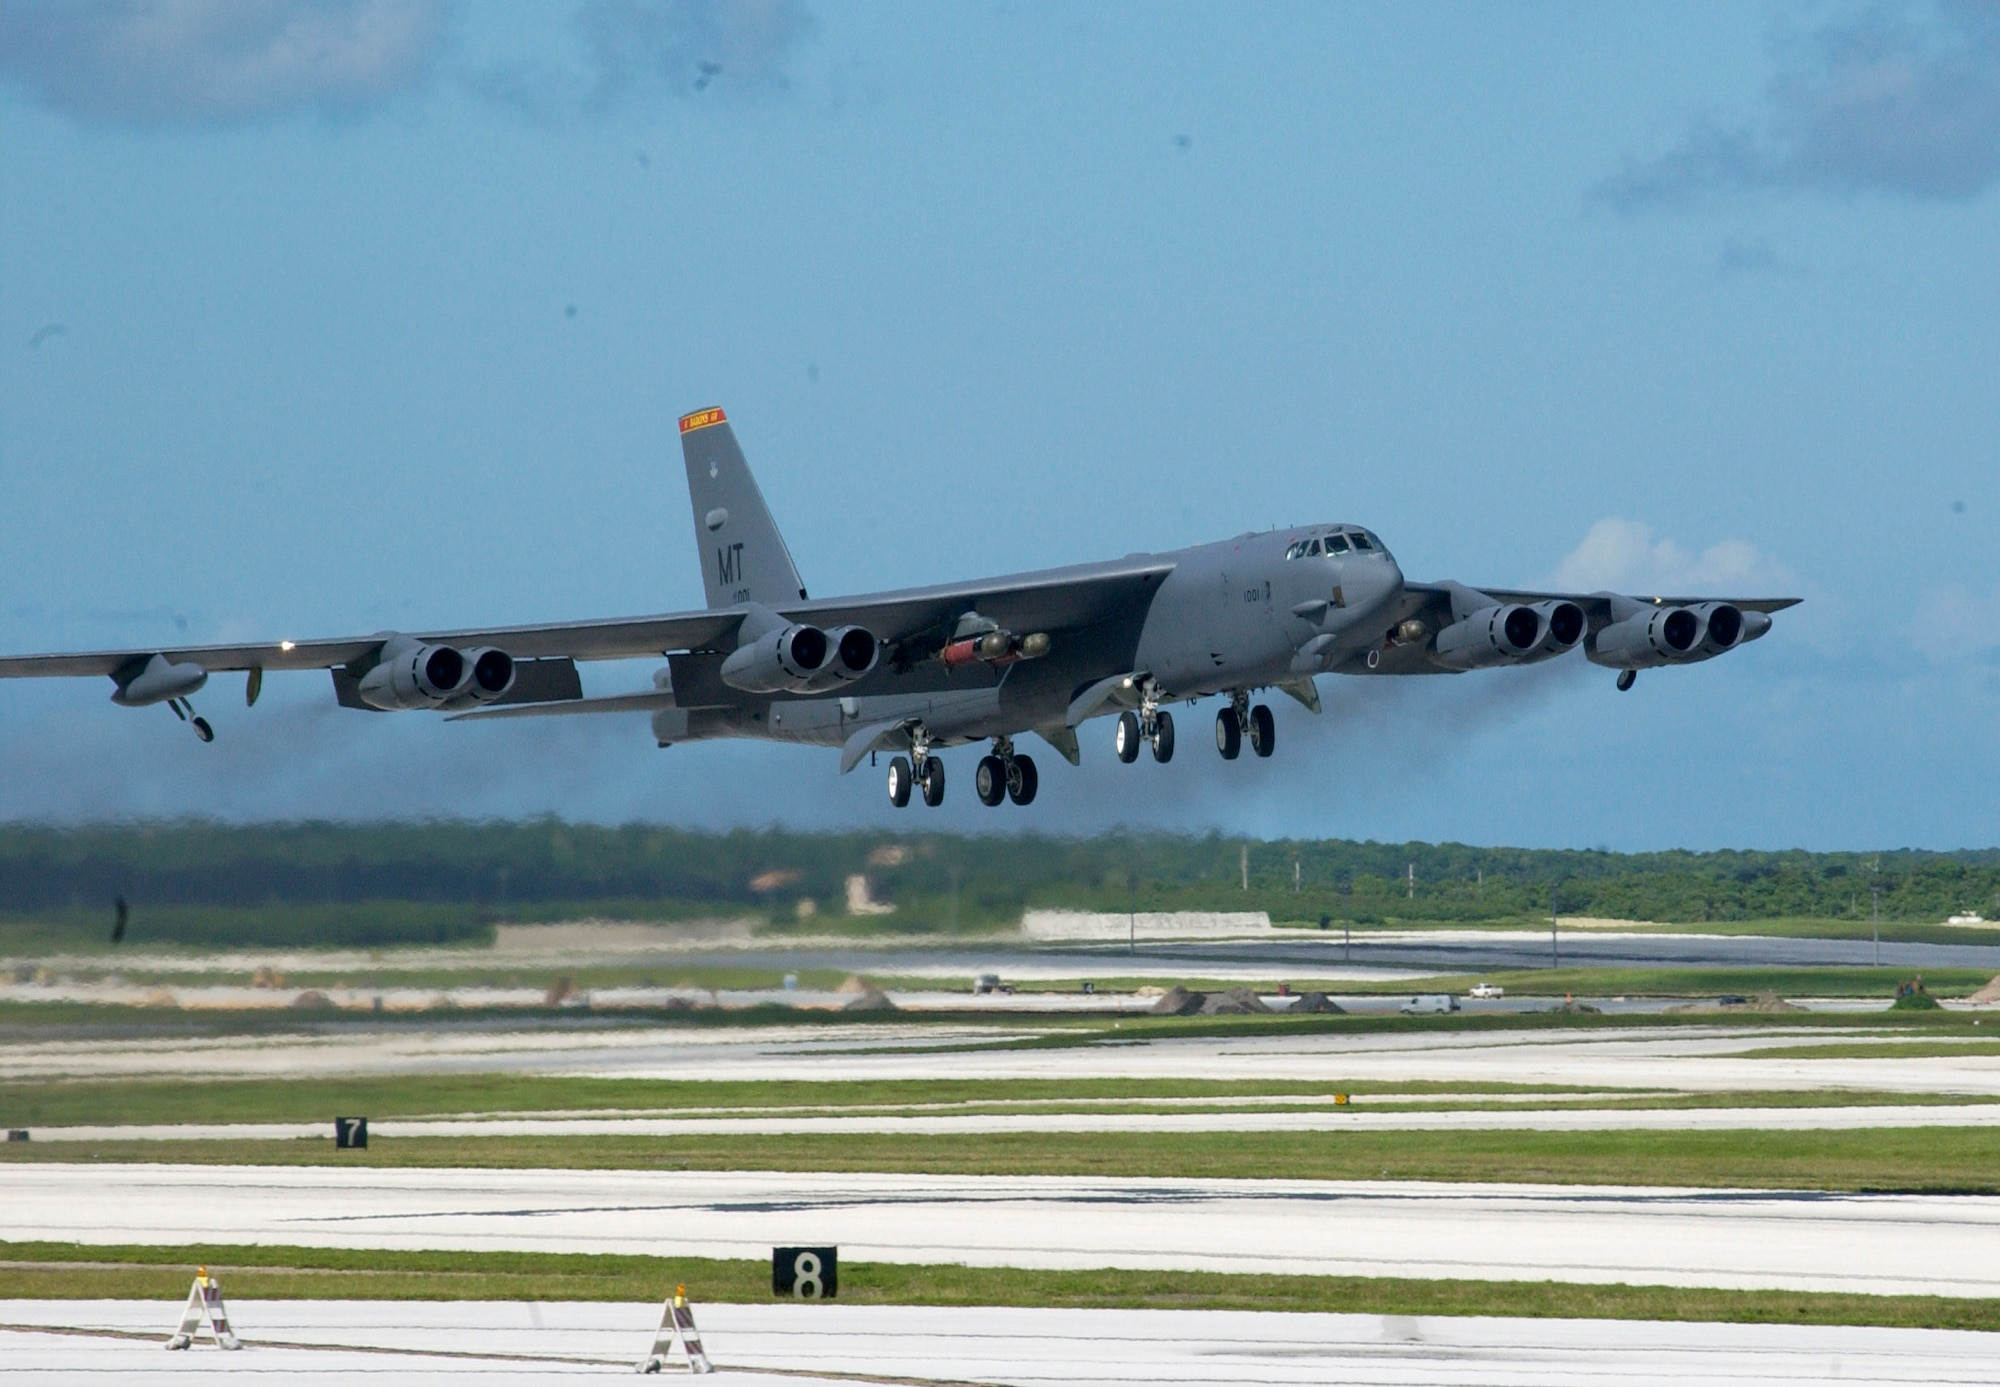 A B-52 Stratofortress takes off from Andersen Air Force Base, Guam, Nov. 3 armed with four Mk 56 mines. This sortie was the 10th and final mission of a week-long joint sea mine-laying exercise with the Navy. The B-52s dropped a total of 96 inert mines on two practice mine fields that were each three miles long and a mile wide. (U.S. Air Force photo/Staff Sgt. Eric Petosky)